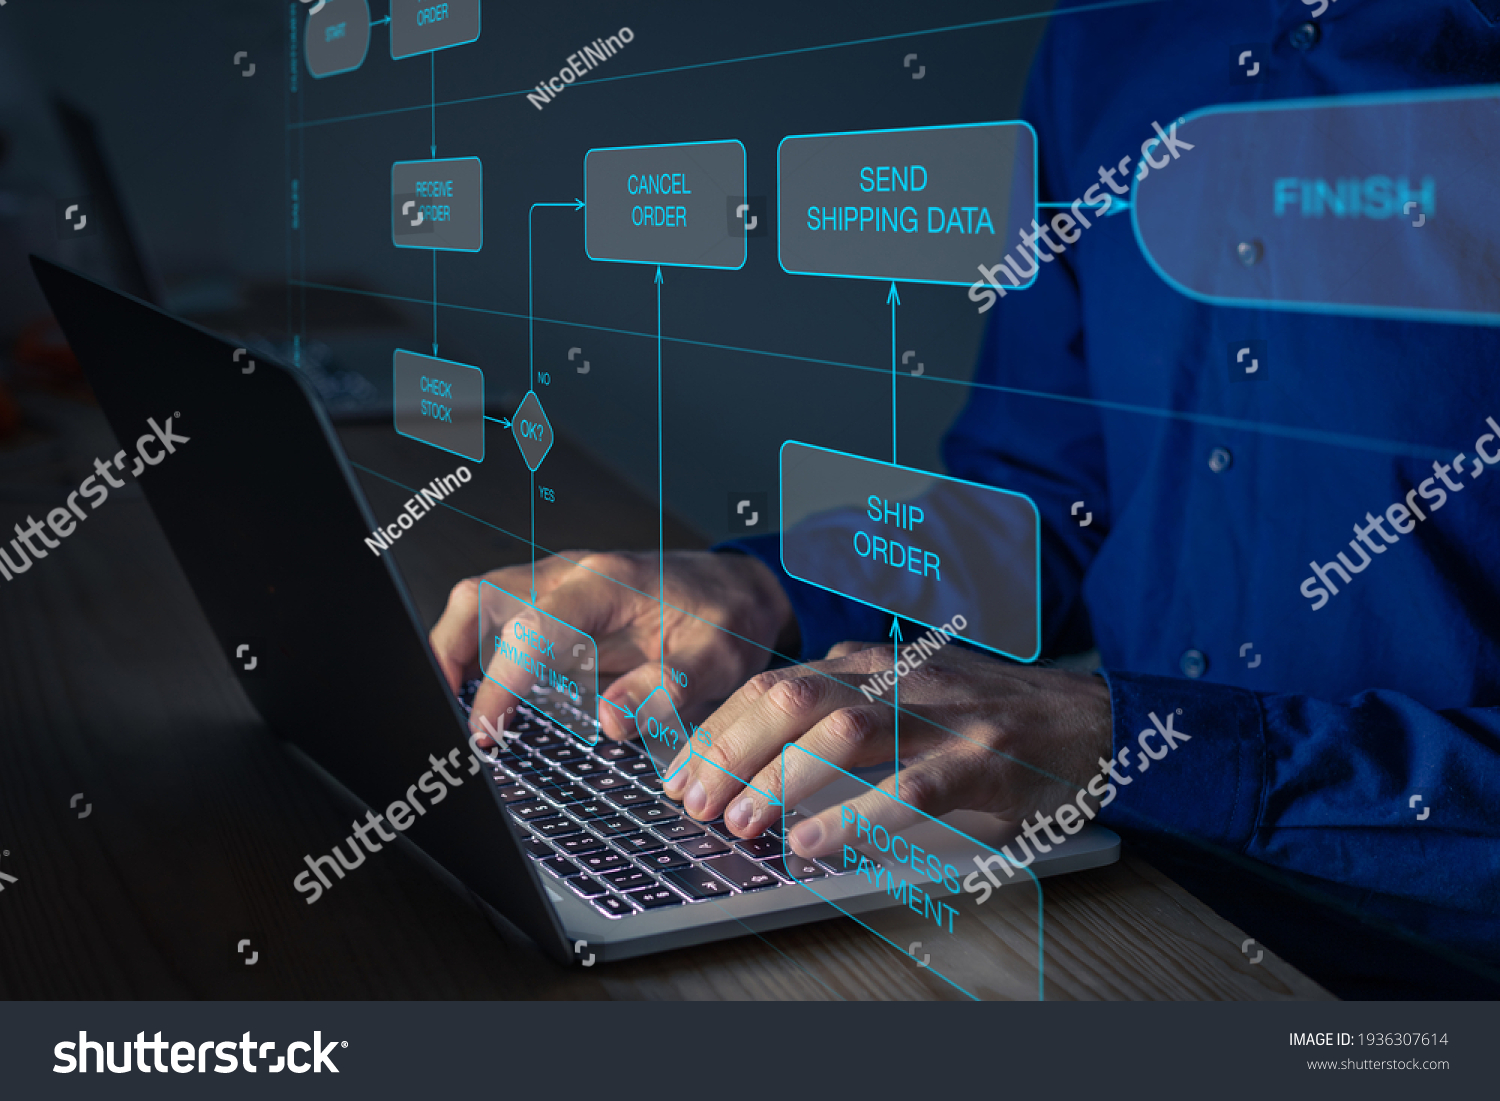 Business process management using flowchart swimlane diagram. Concept with manager using computer to map activities and responsibilities to automate workflow. Corporate organization and strategy. #1936307614